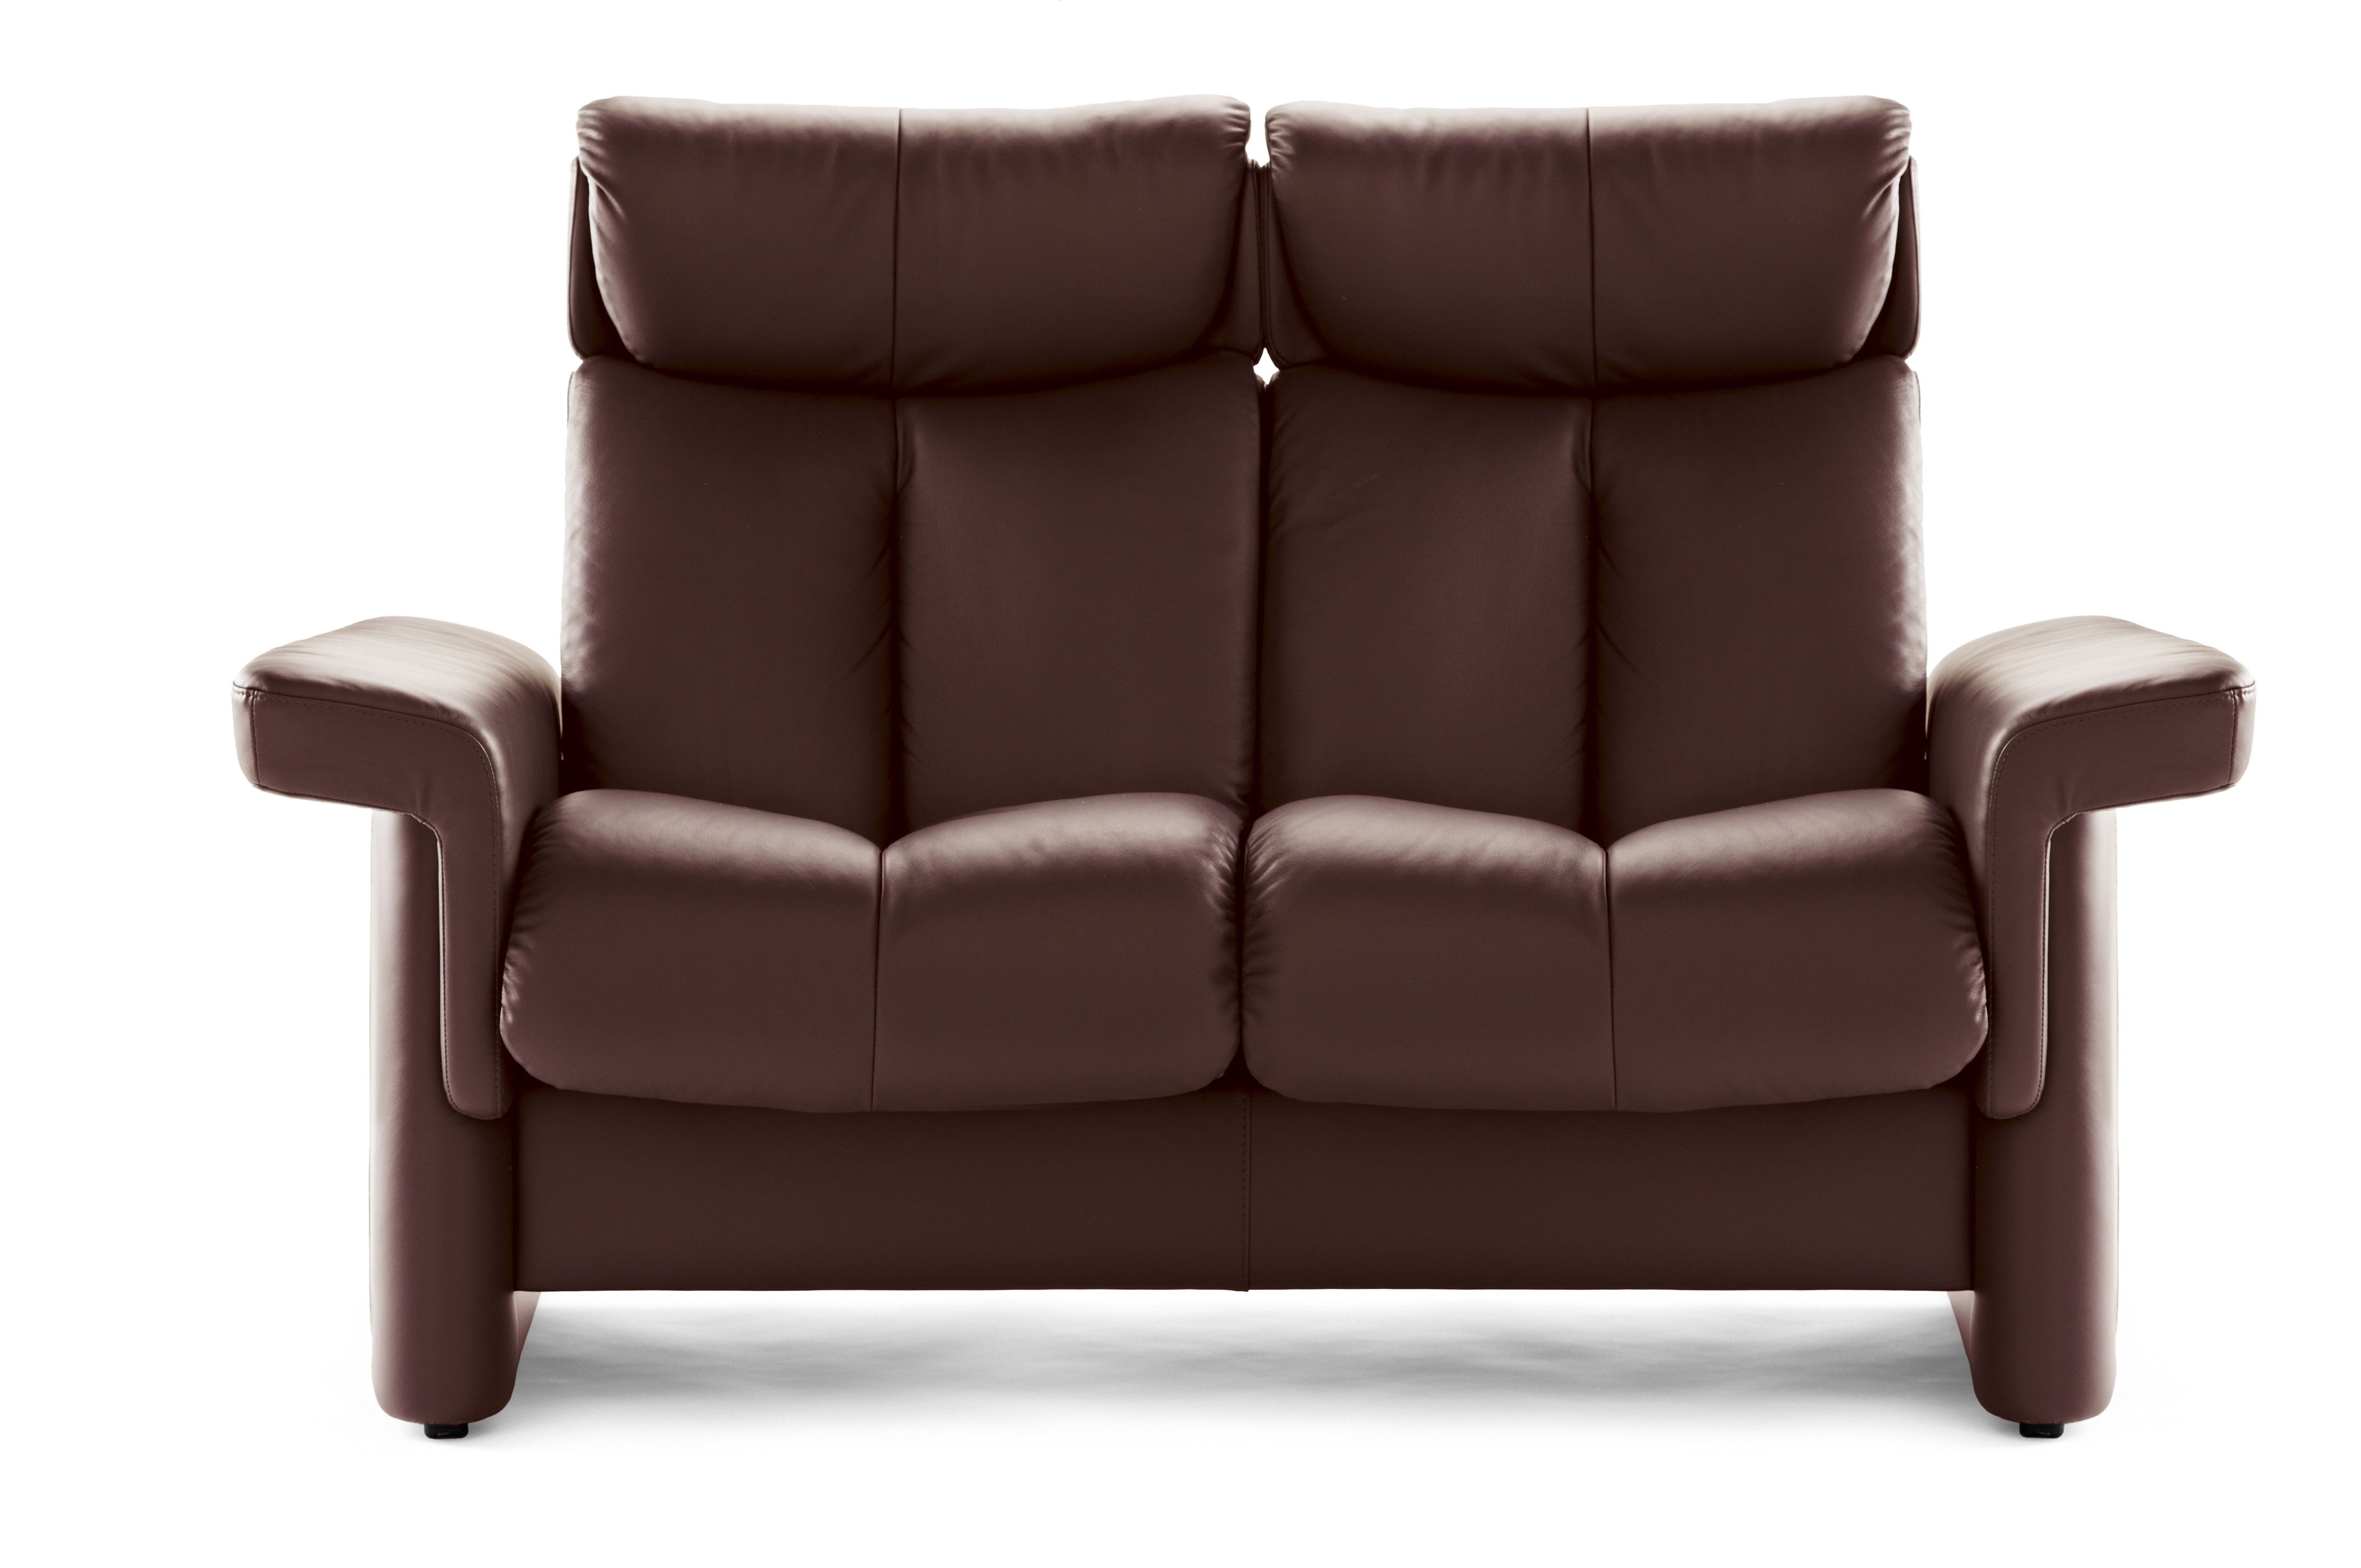 New Arrivals And Departures Stressless Ekornes In